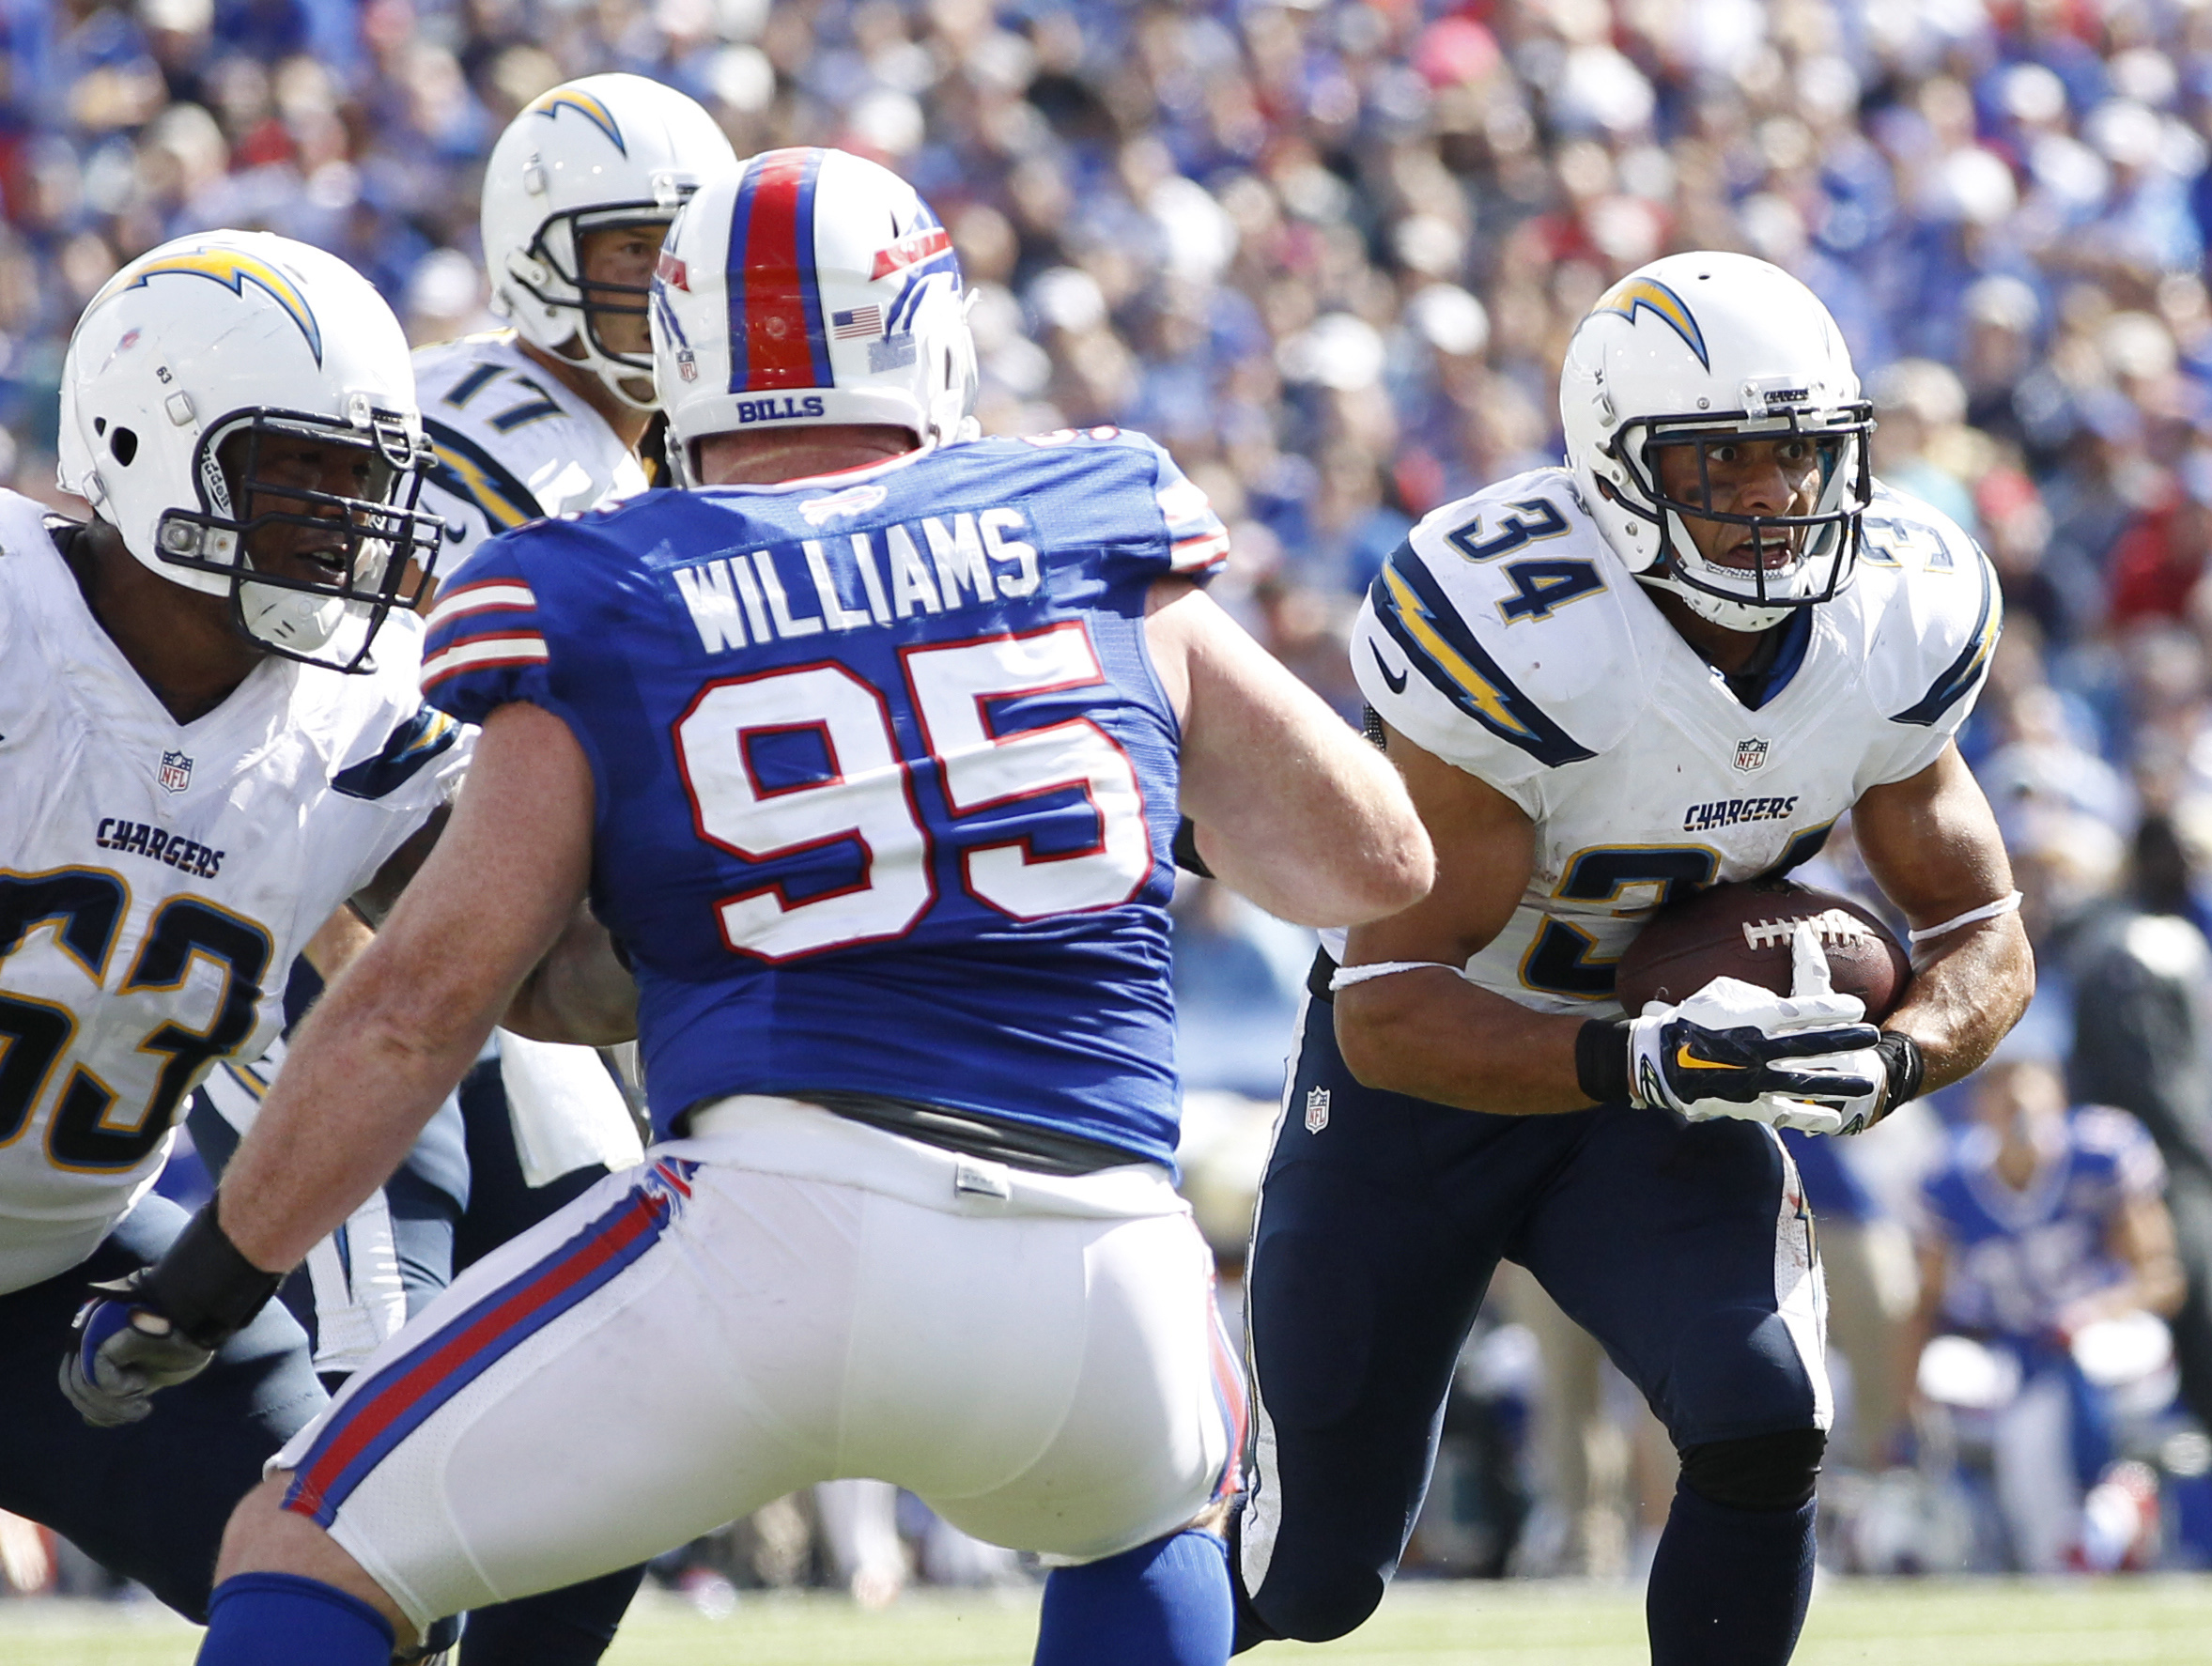 8099214-nfl-san-diego-chargers-at-buffalo-bills